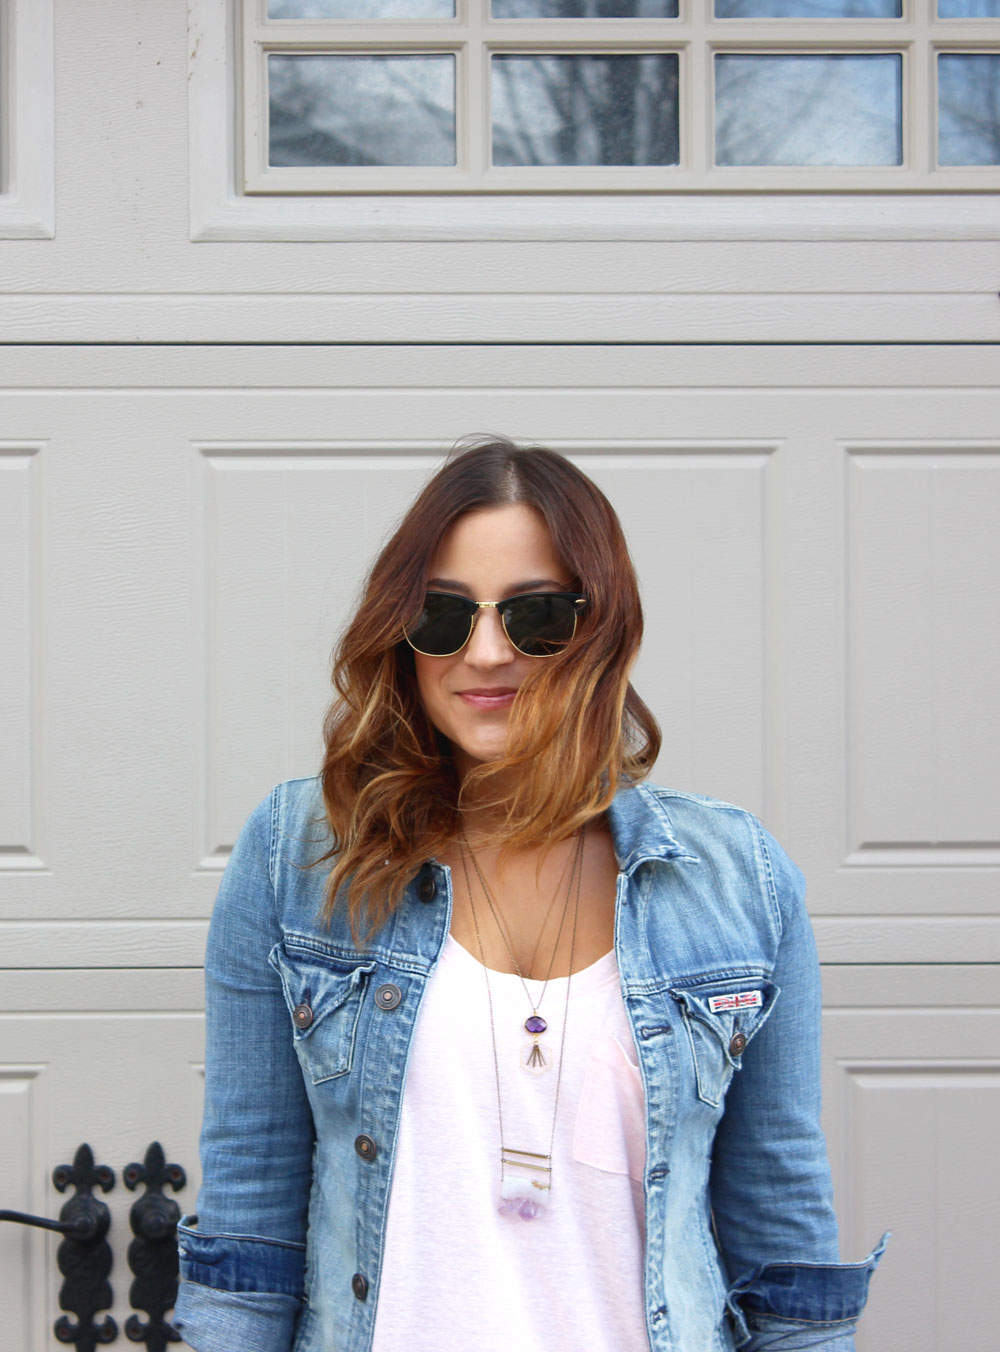 How to wear a Canadian Tuxedo and still look stylish and trendy